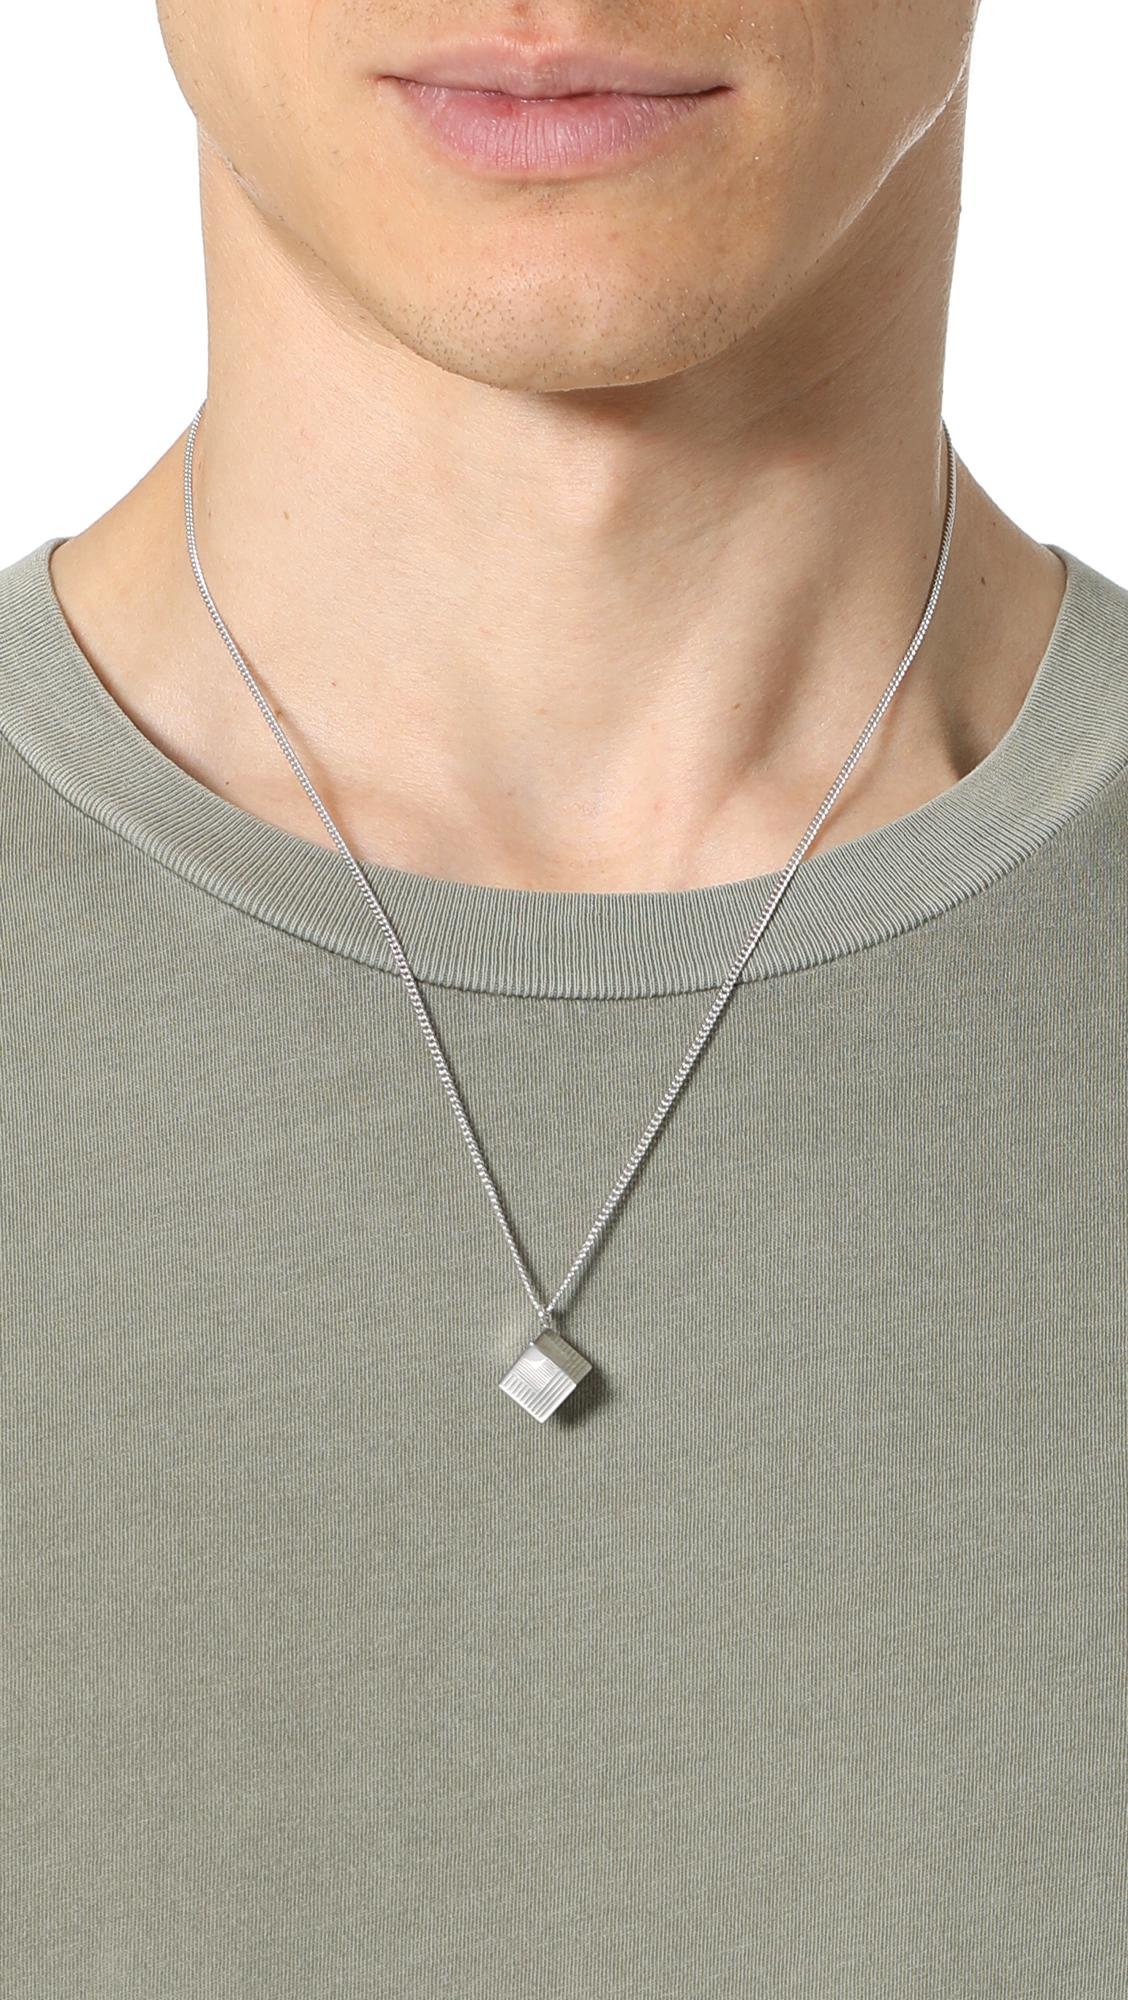 a apc c gold men bristol necklace p